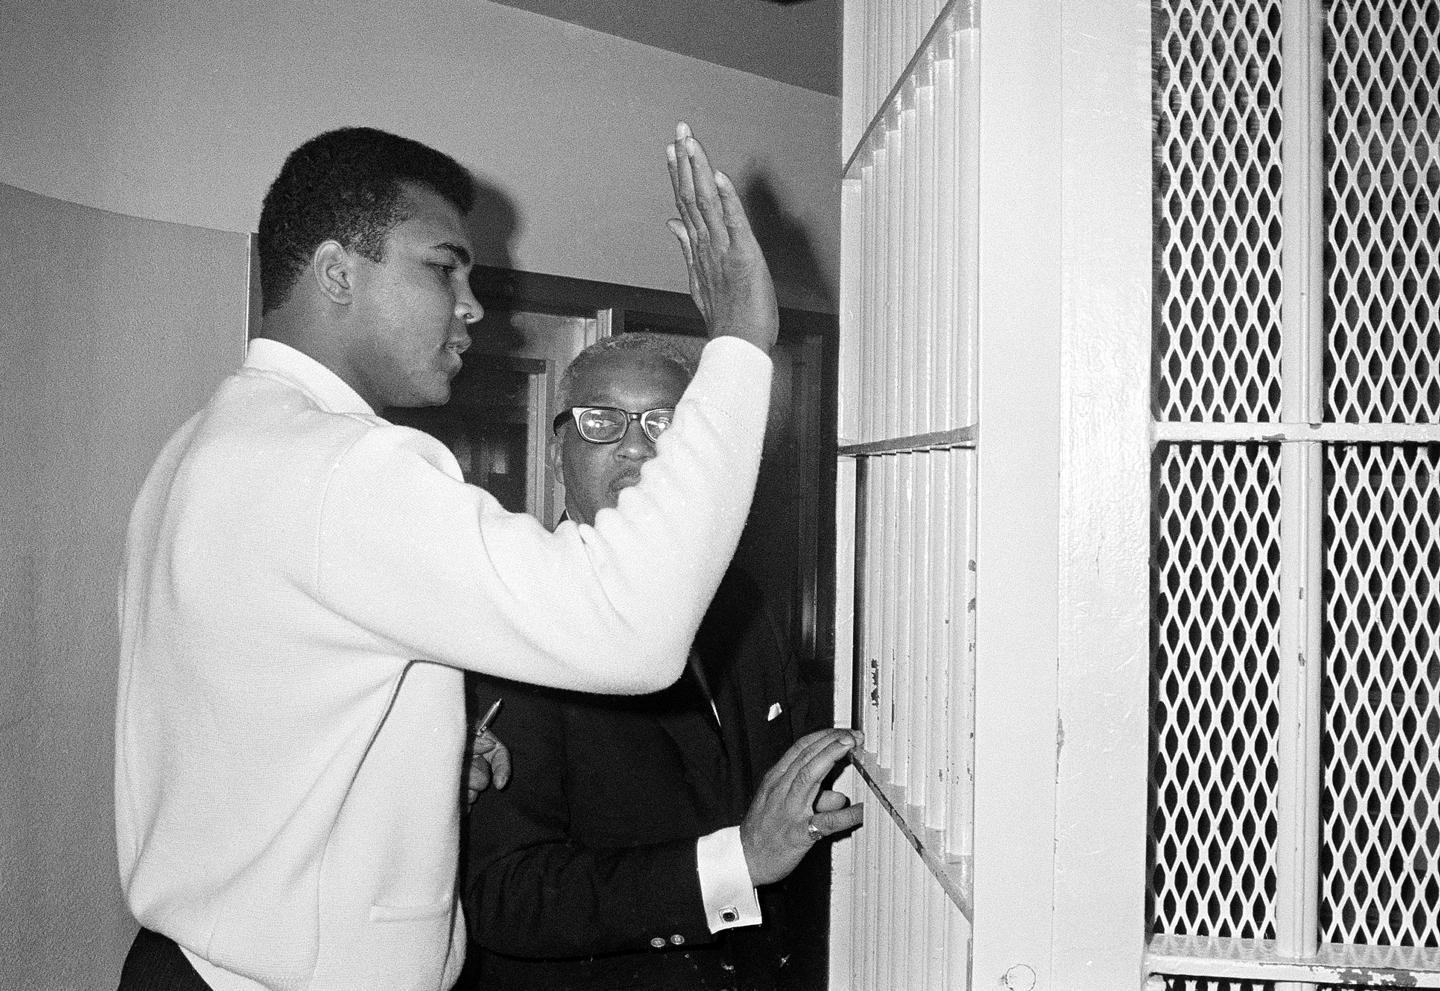 Former heavyweight boxing champ Muhammad Ali pats the bars on the door of the Dade County jail, Dec. 16, 1968, as he starts serving a 10-day sentence on an old traffic charge. Ali said this would be good training if he has to serve his five-year term for draft dodging. The former champion surrendered voluntarily today and is accompanied by his attorney Henry Arrington.